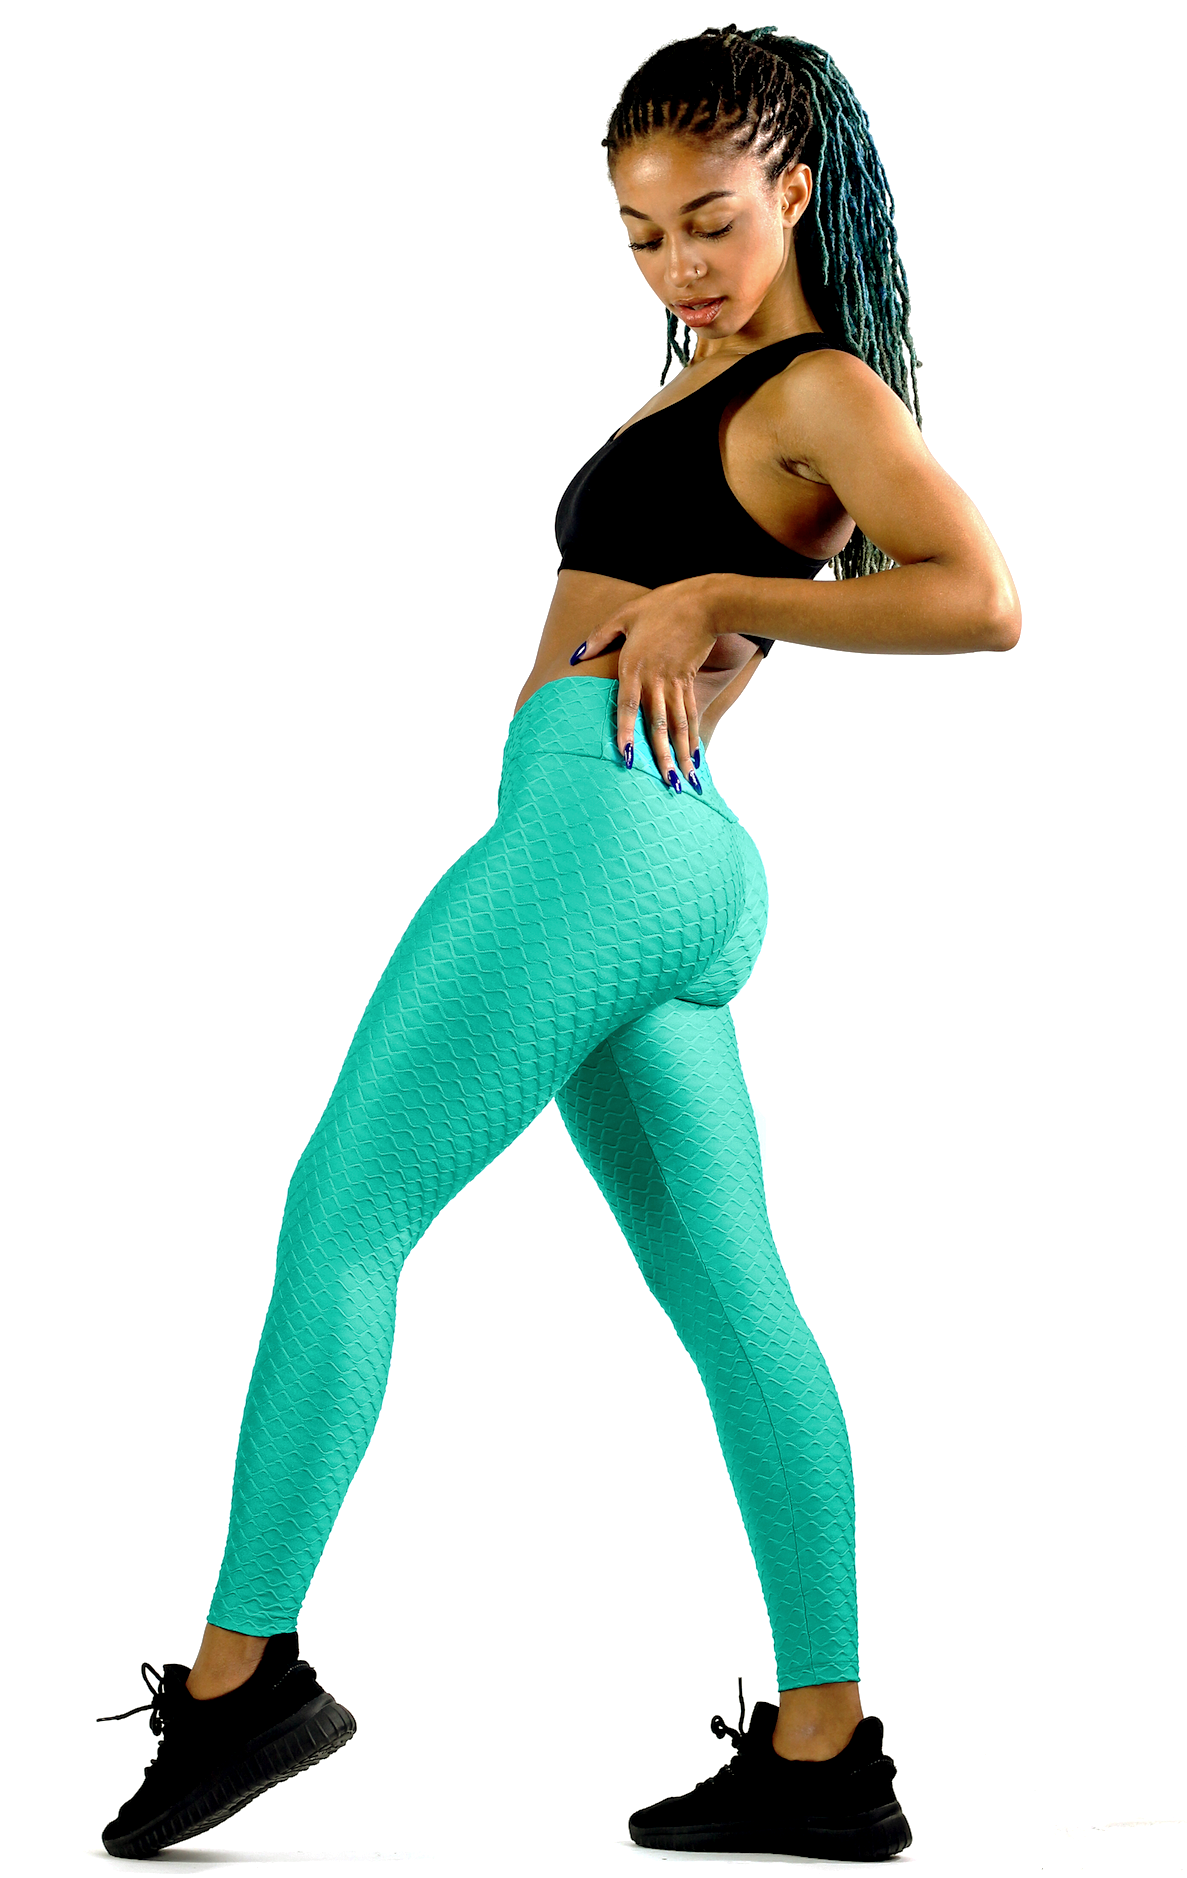 Wave Emarald Green Tights